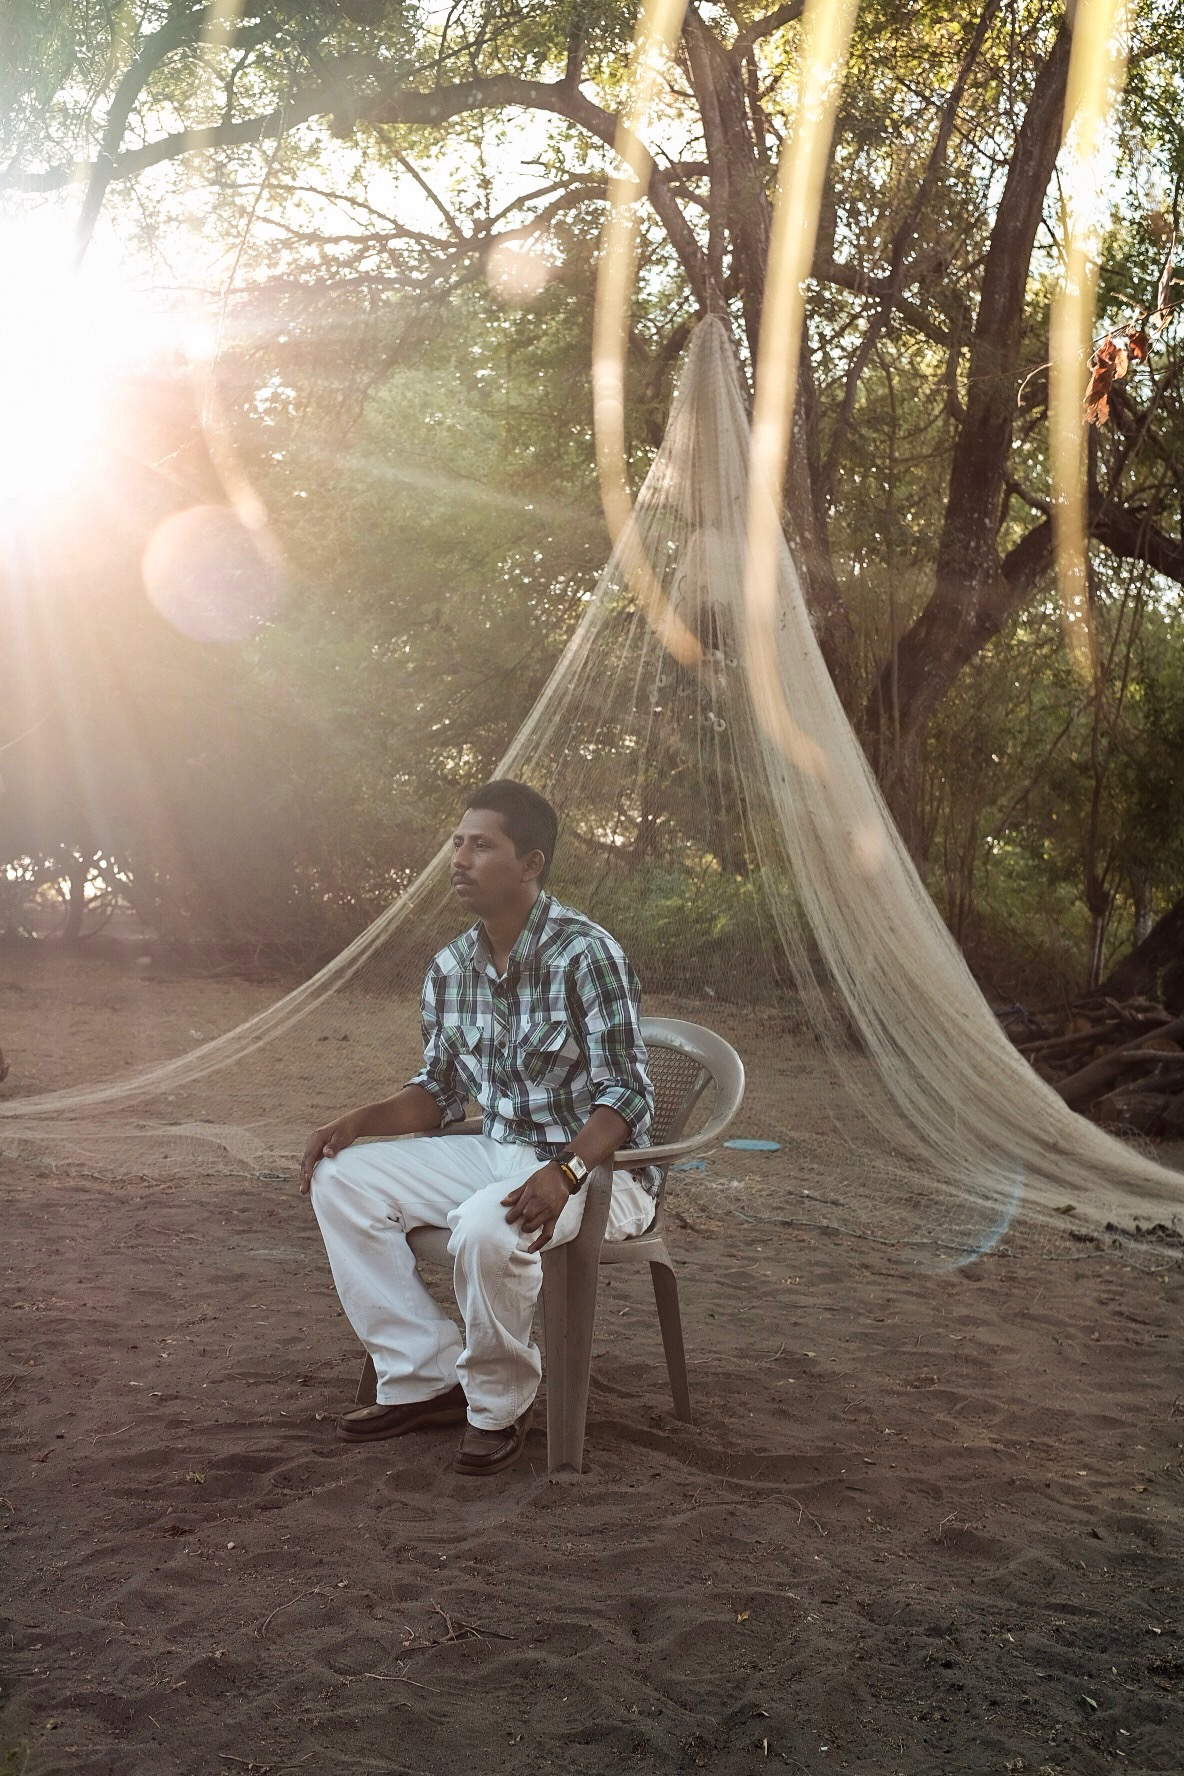 The Fisherman - On weekdays, he mends nets and makes dynamite by hand. On weekends, he joins the community as a pastor.